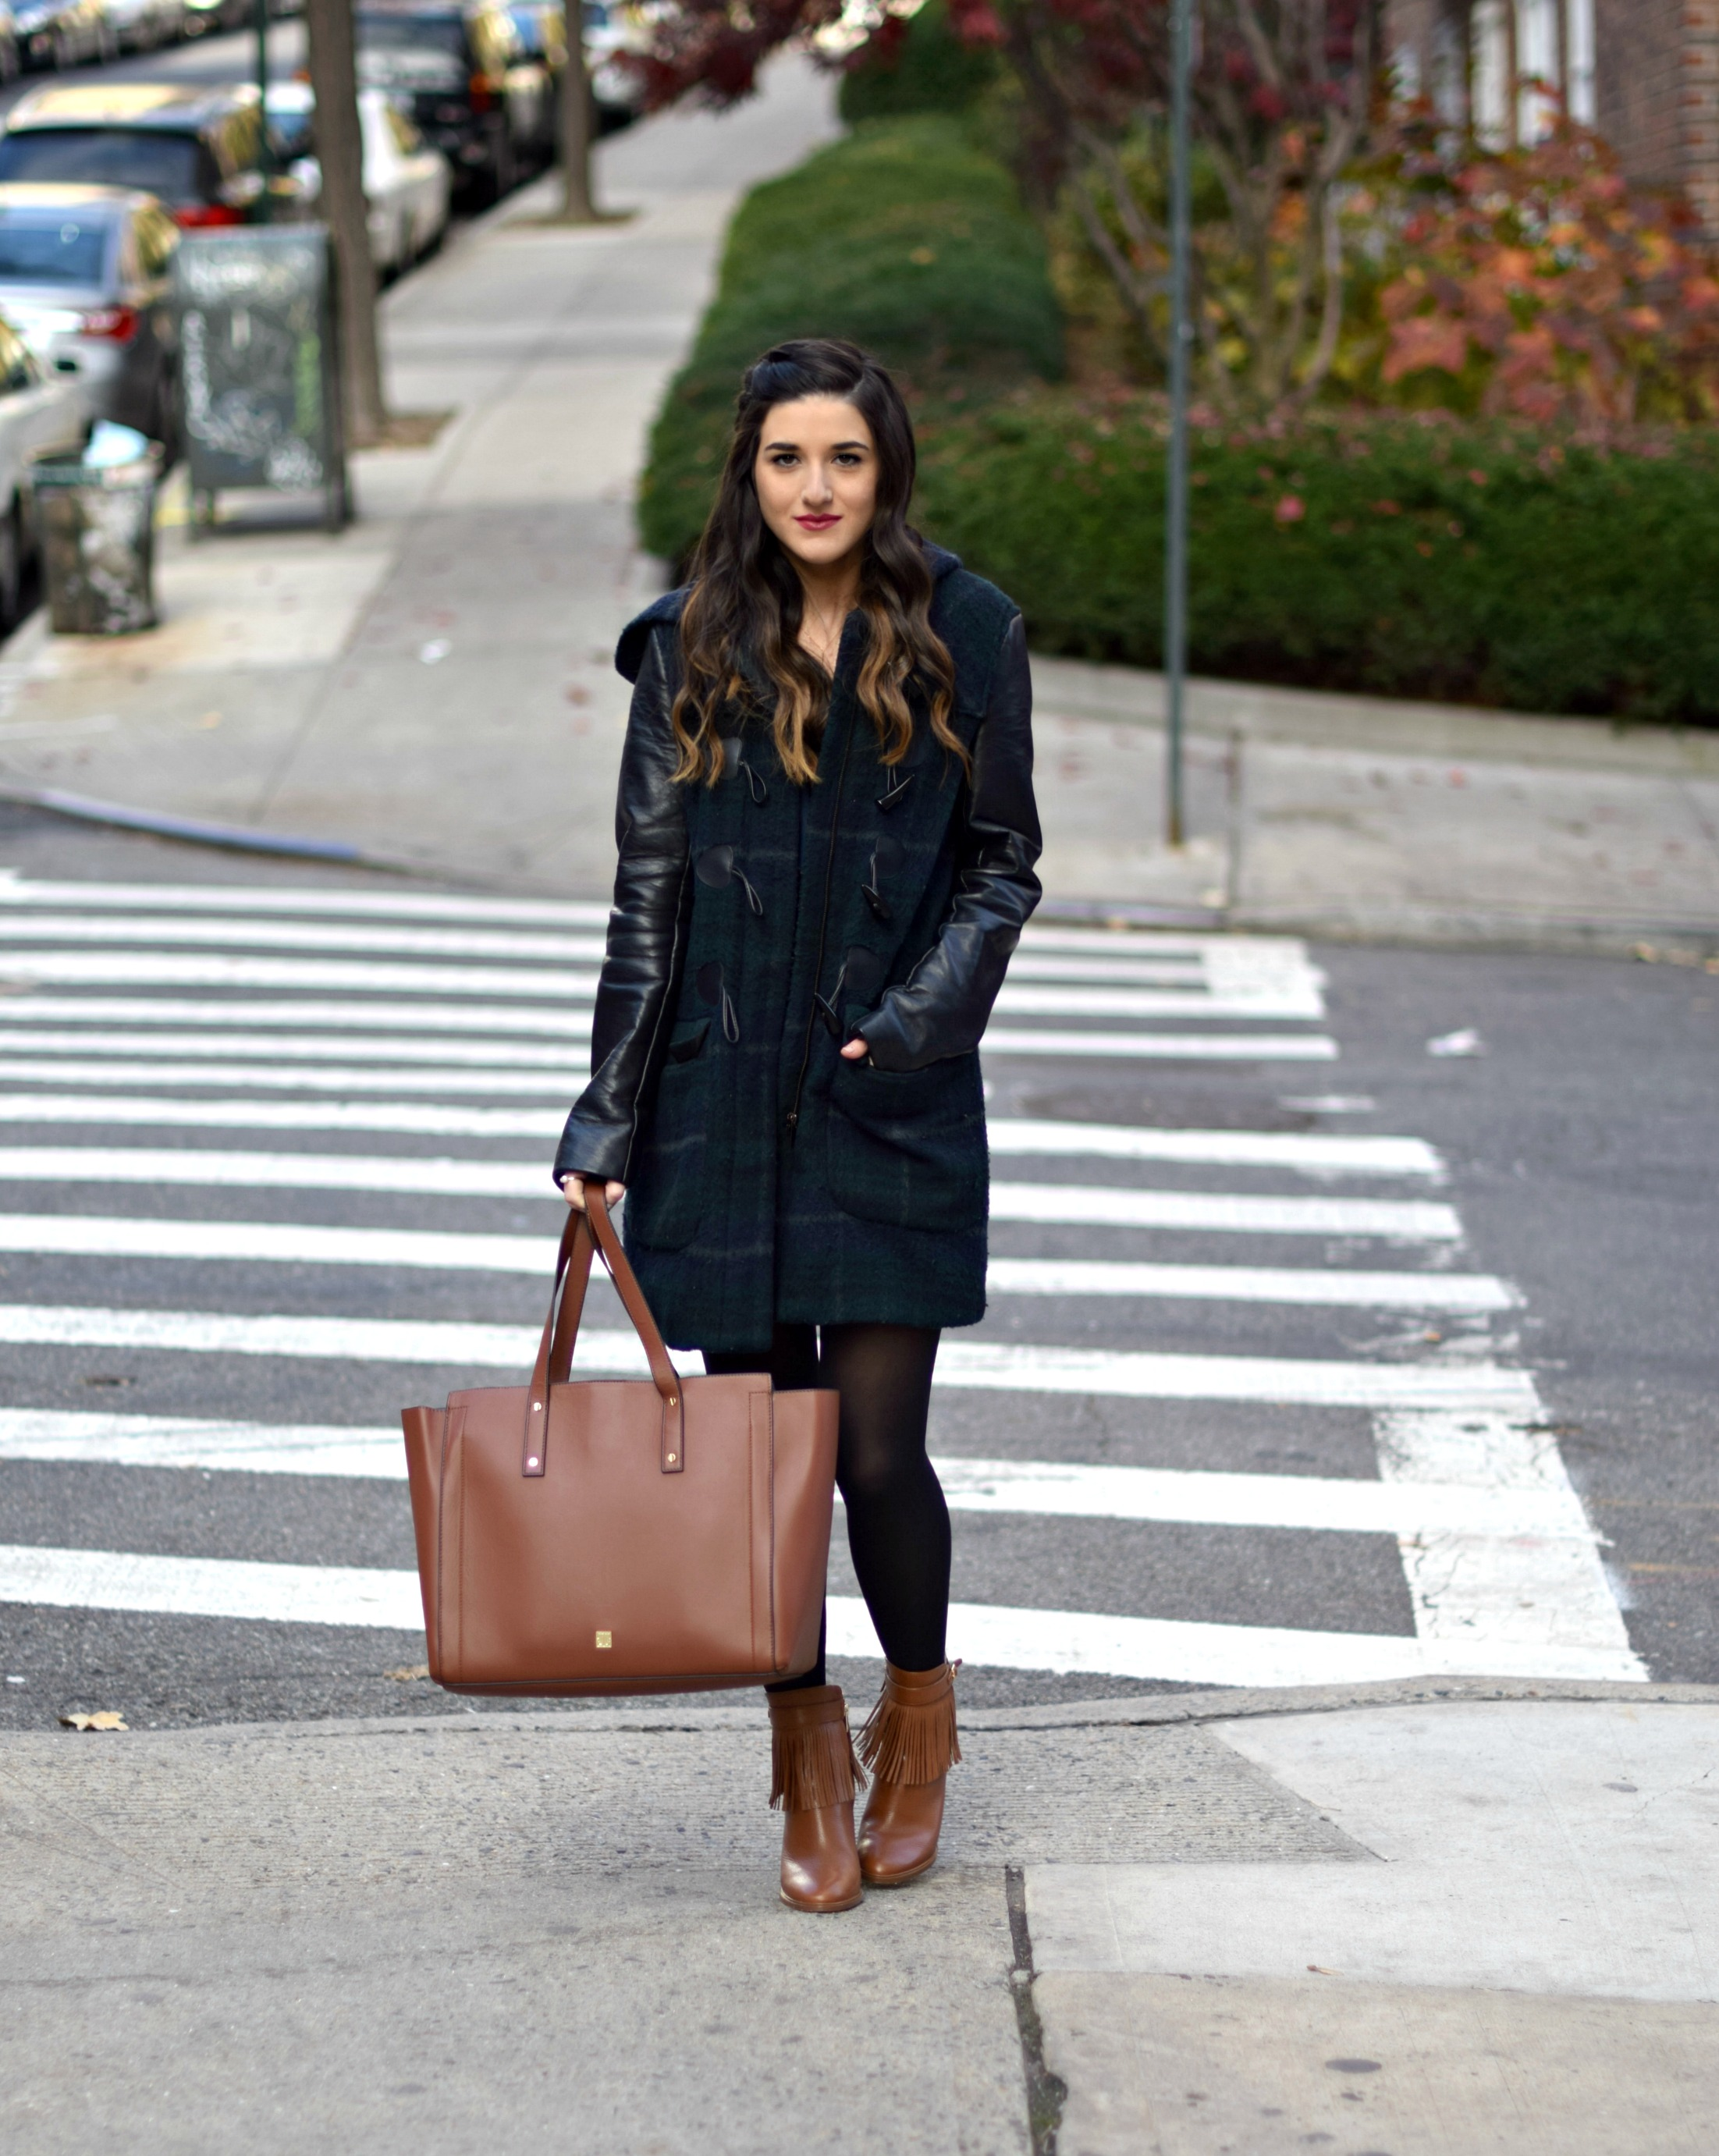 Navy Romper Fringe Booties Louboutins & Love Fashion Blog Esther Santer NYC Street Style Blogger Zara Plaid Coat Leather Sleeves Girl Women OOTD Outfit Soho Tote Ivanka Trump Accessories Shoes Boots Winter Black Tights Inspo Hair Braid Rings Jewelry.jpg